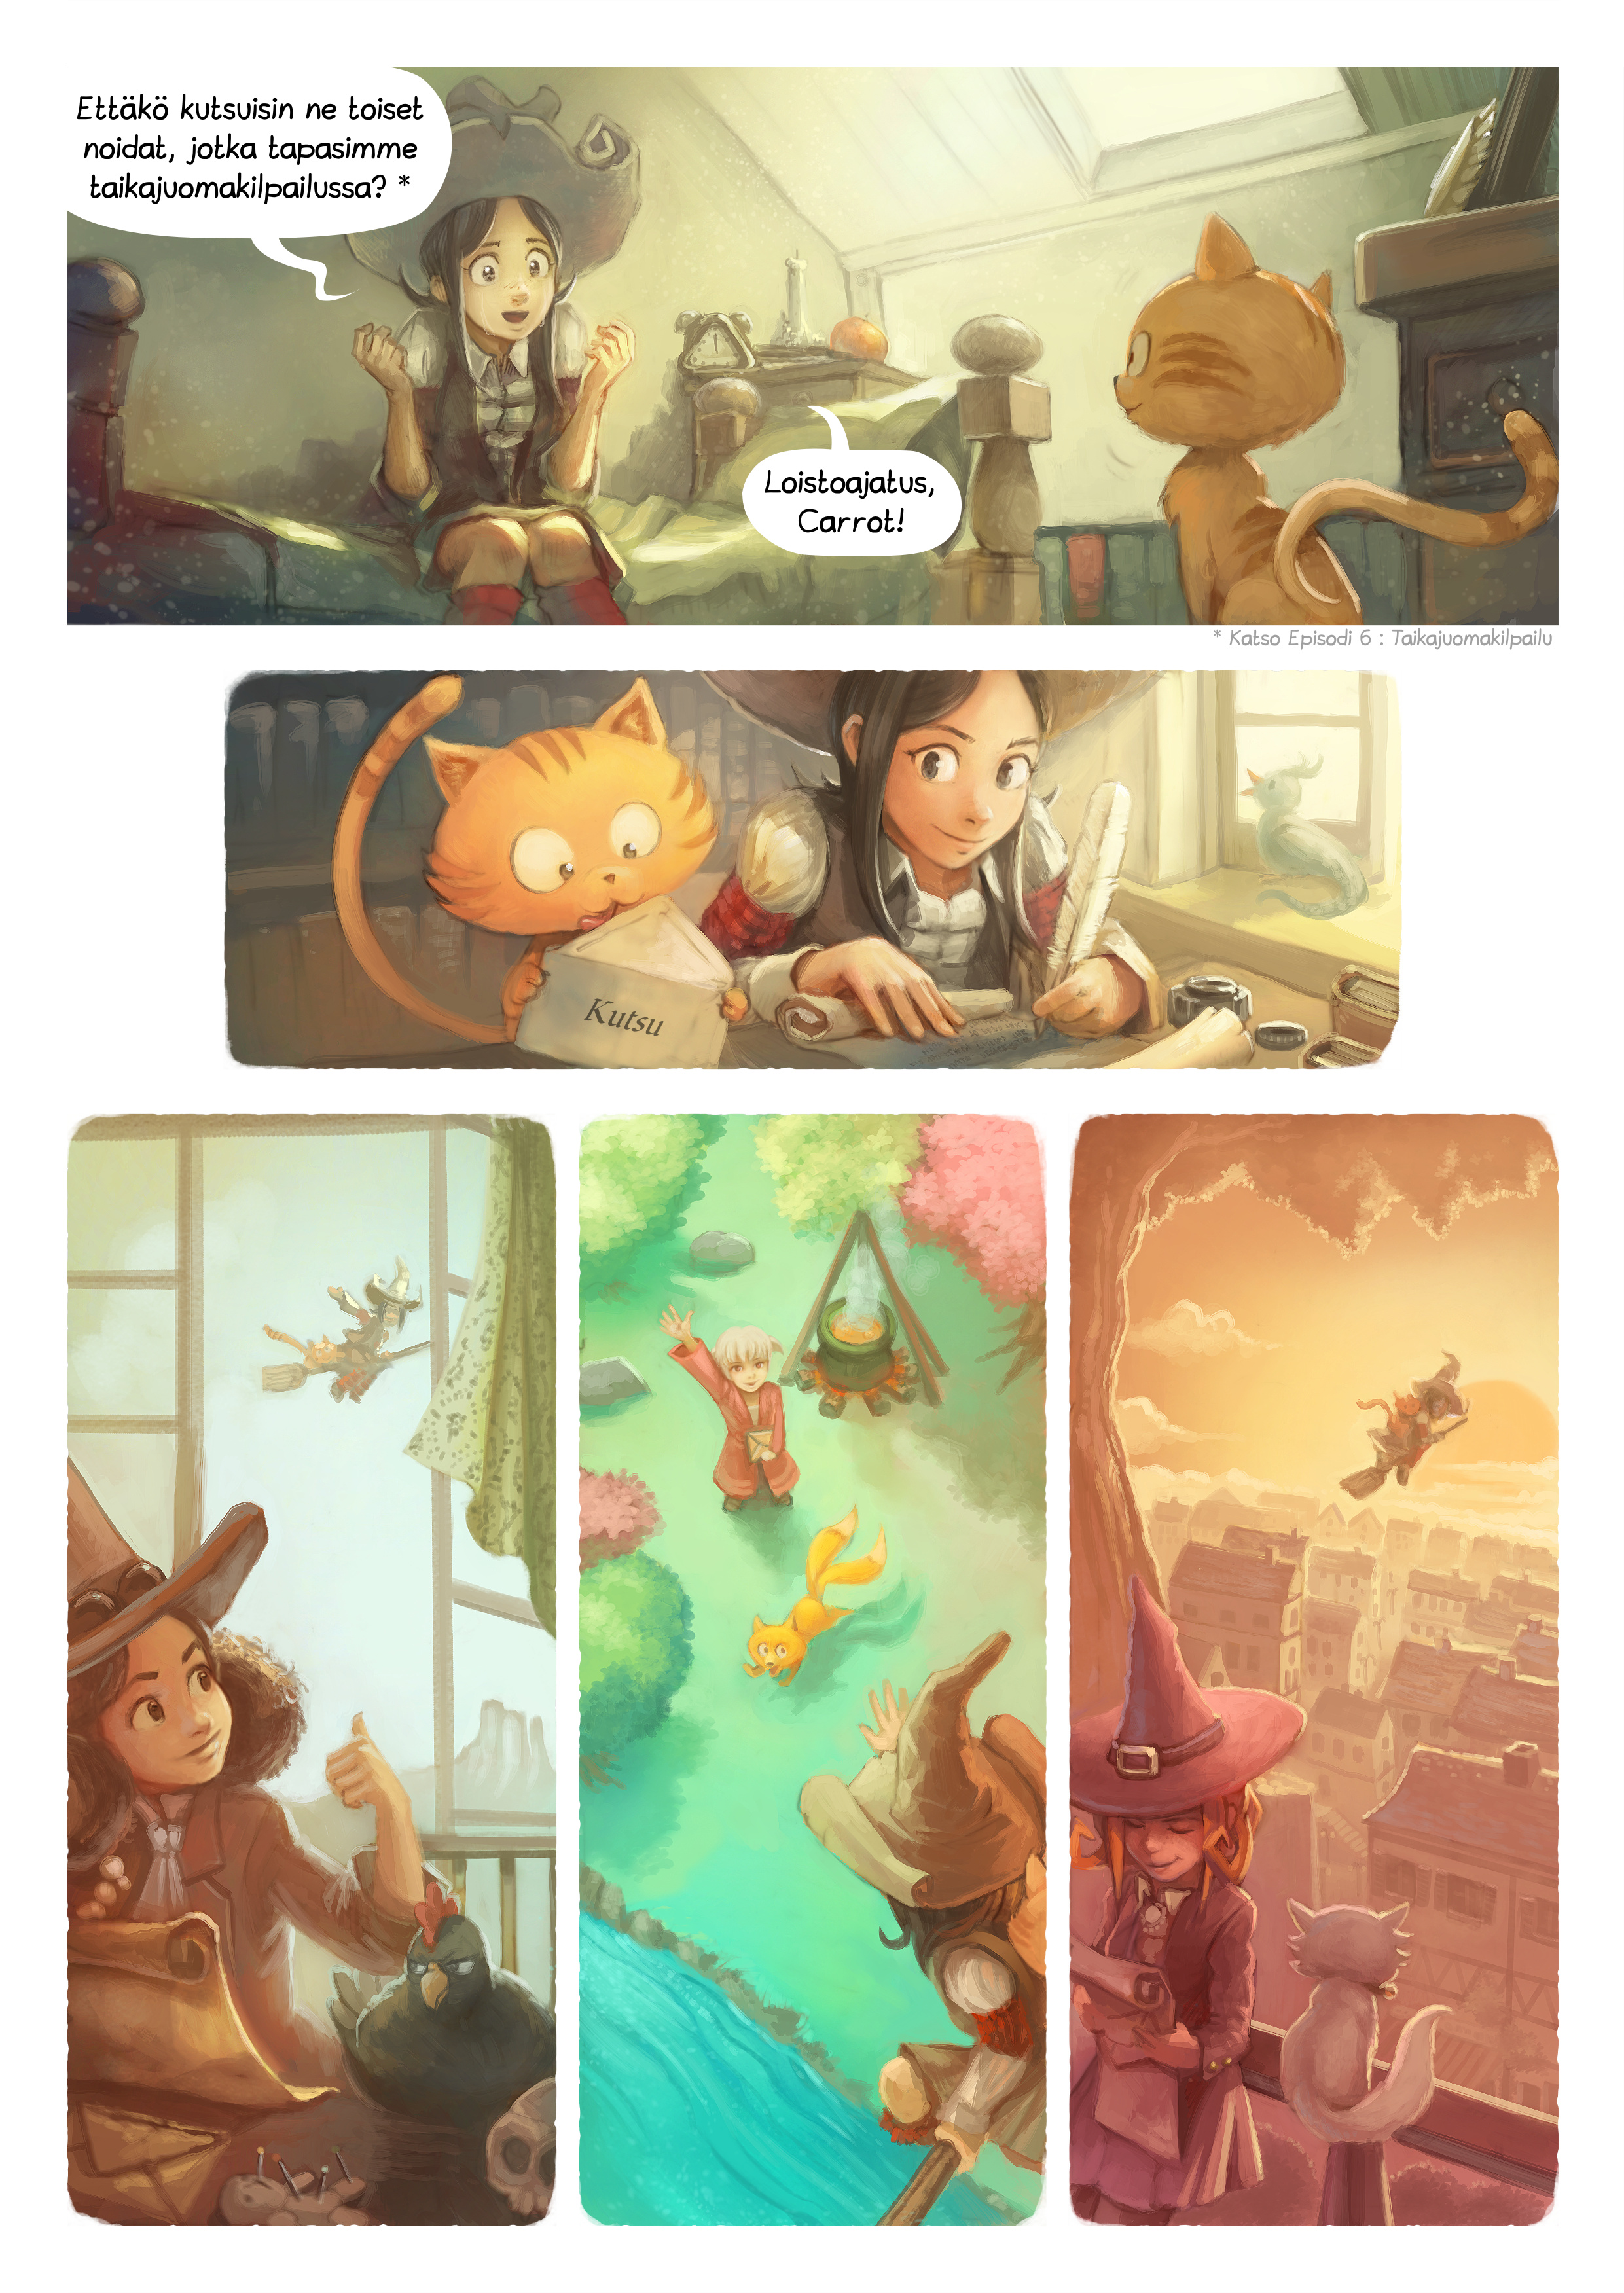 A webcomic page of Pepper&Carrot, episode 8 [fi], page 2